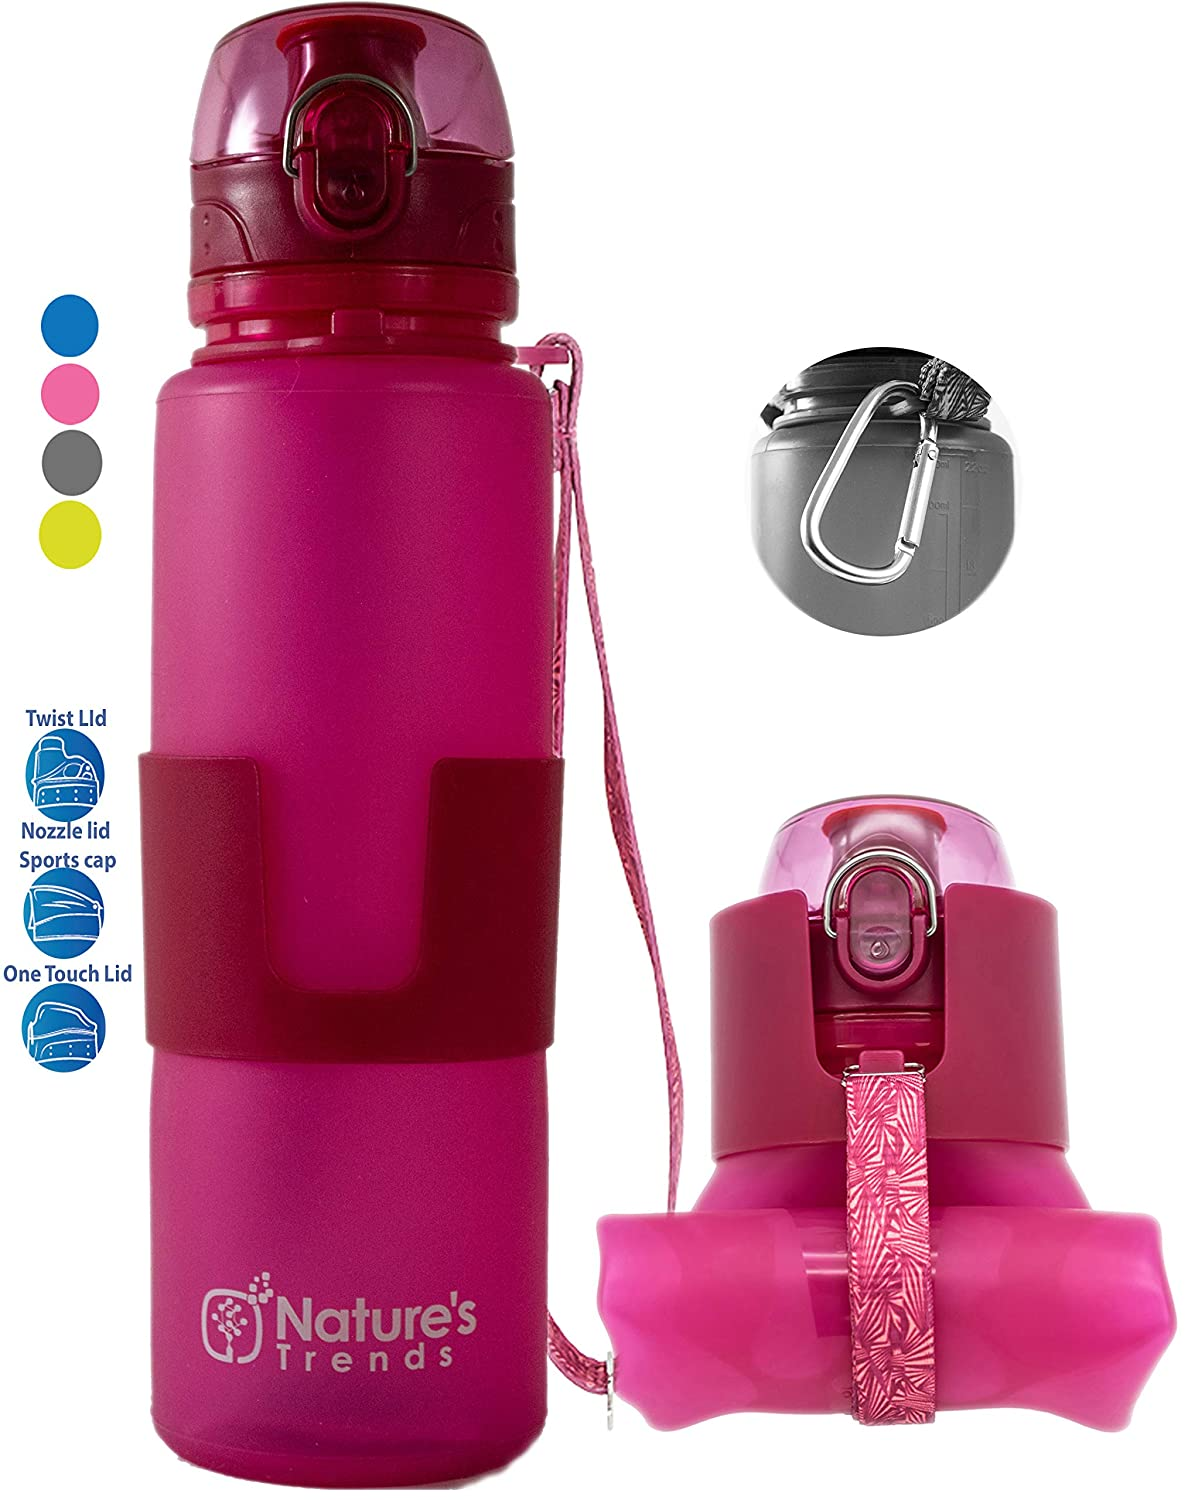 Compact Leakproof Water Bottle Lightweight Silicone Water Bottle Foldable Gym Bottles Portable Bottle Travel Natures Trends Collapsible Water Bottle BPA-Free Eco Hiking Bottle